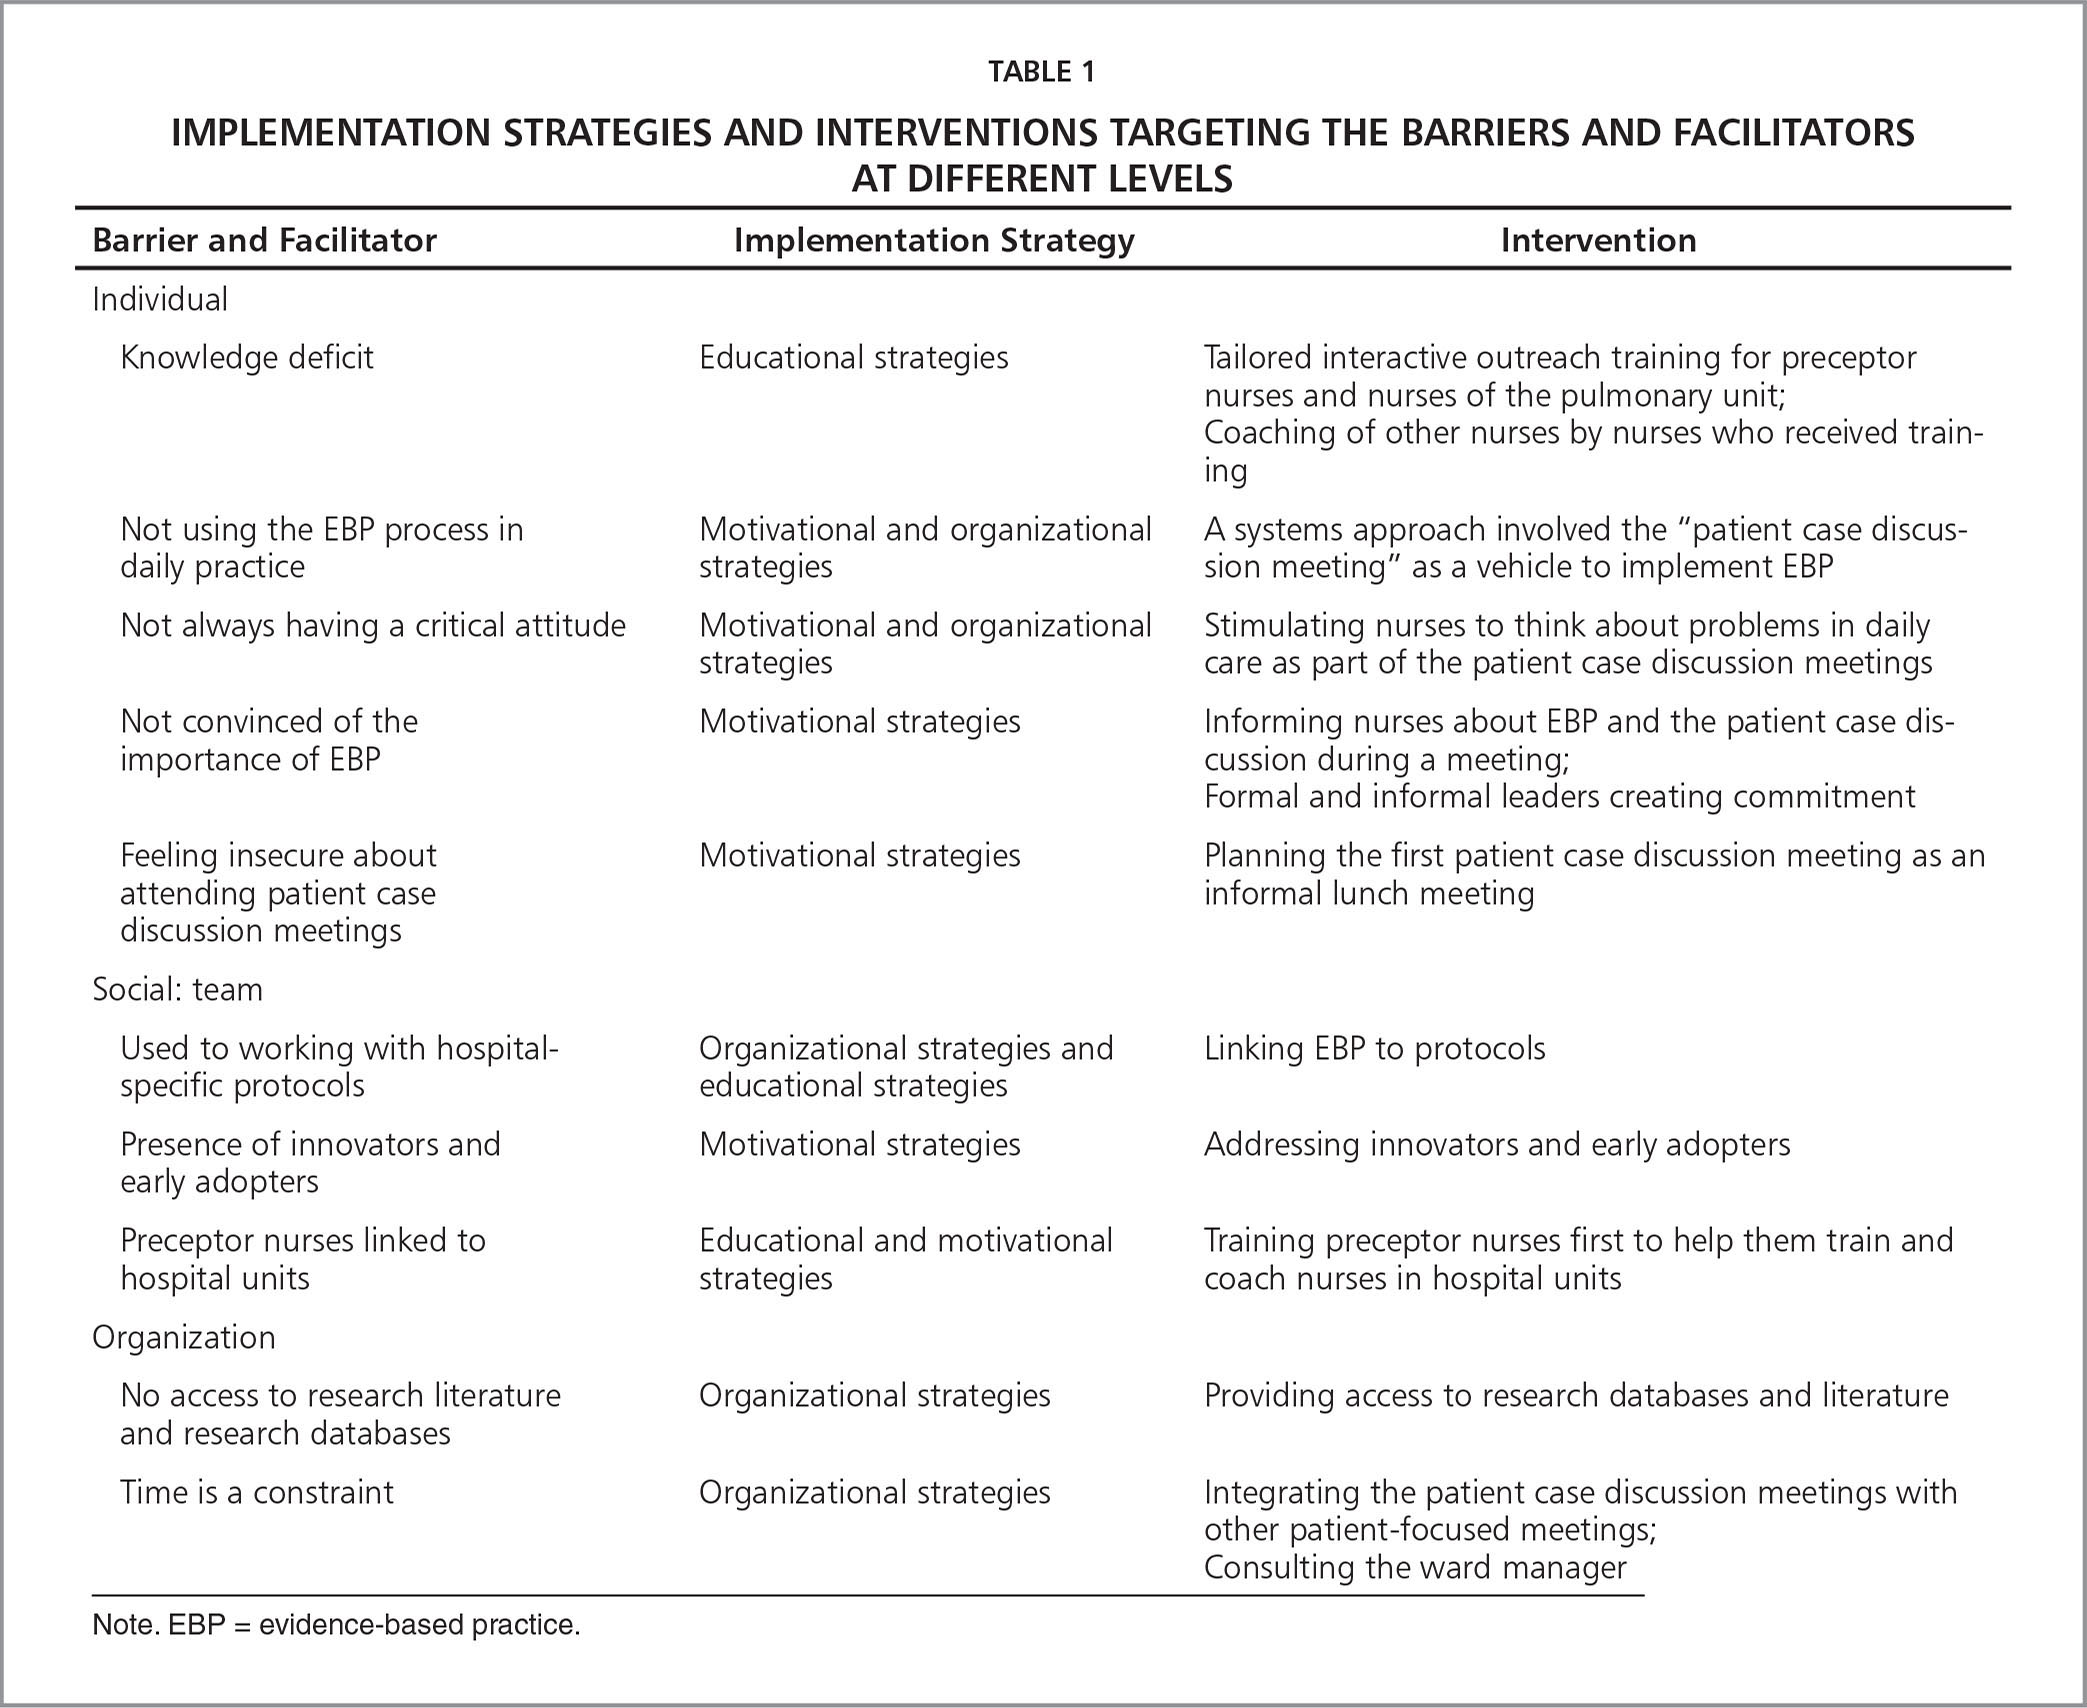 Implementation Strategies and Interventions Targeting the Barriers and Facilitators at Different Levels